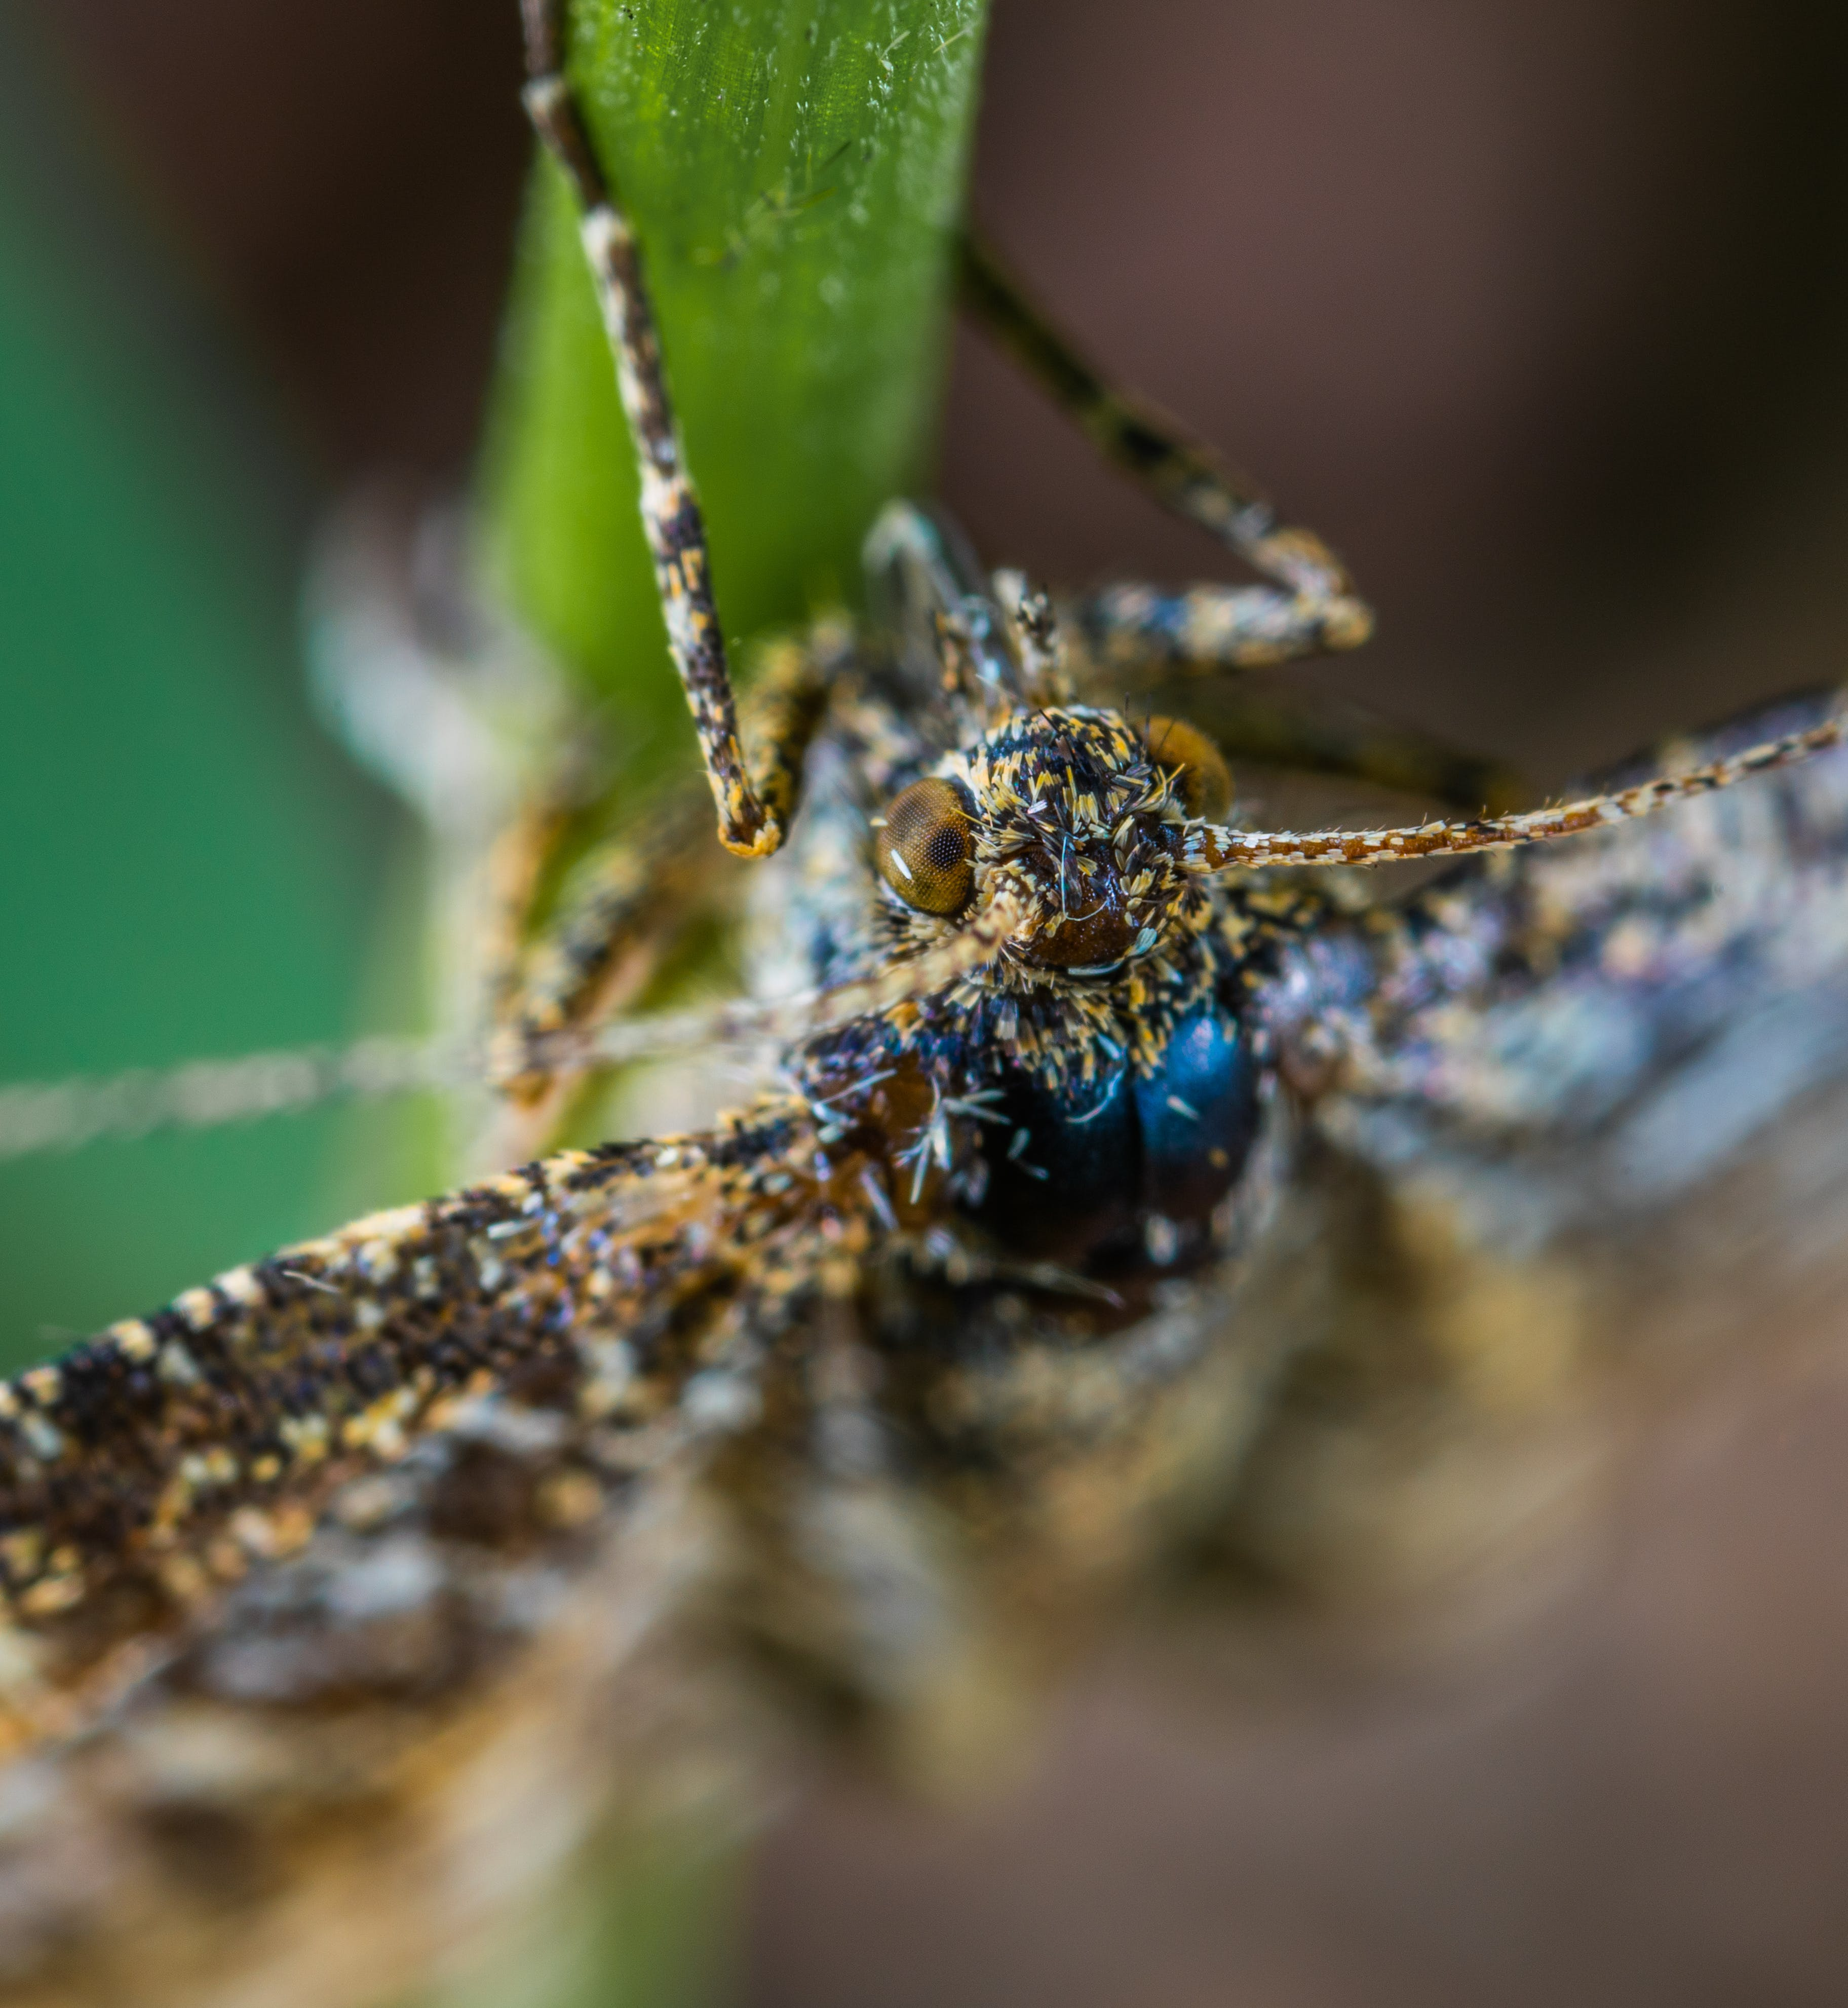 Close-up Photography of Brown Winged Insect on Leaf Stem